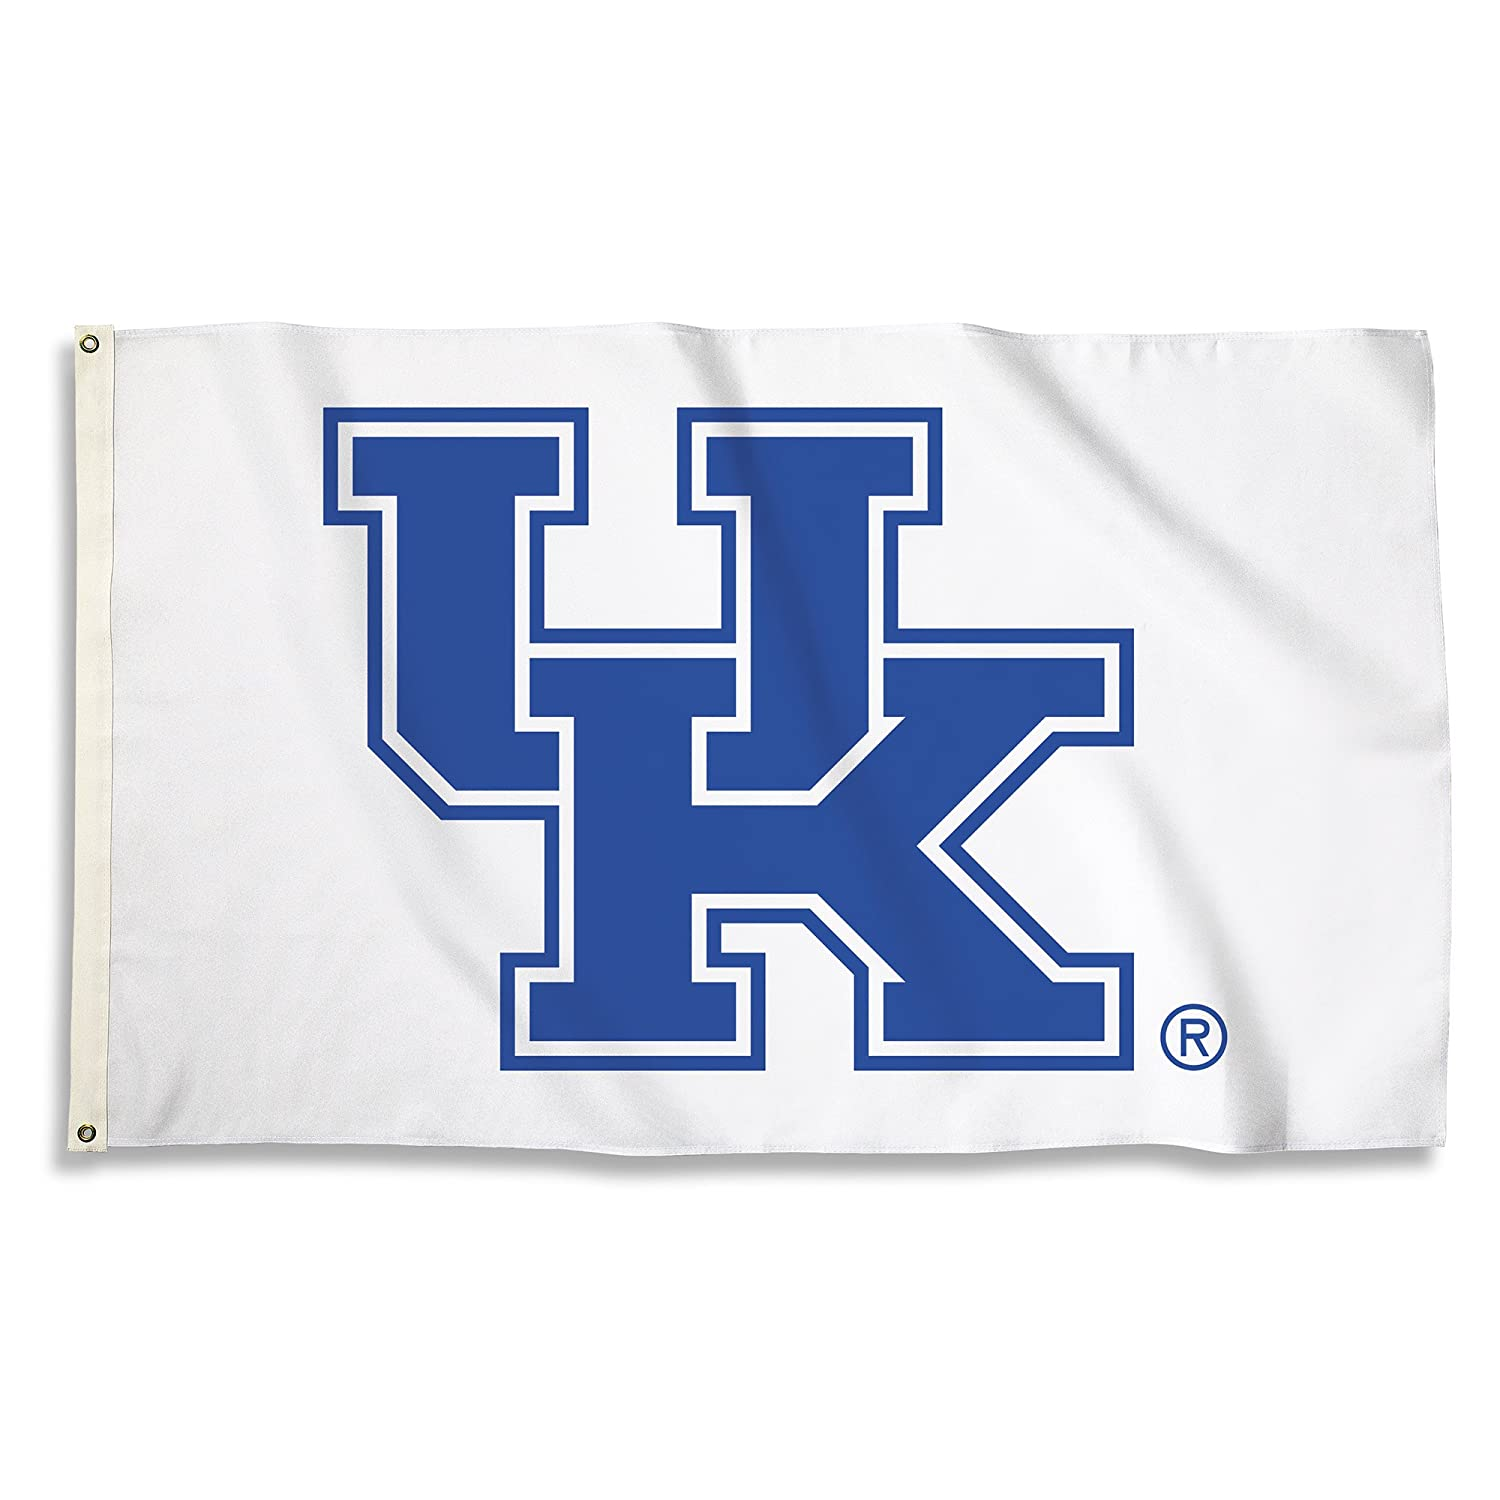 NCAA 3 Ft. X 5 Ft. Flag with Grommets Navy BSI Products Inc. 95216